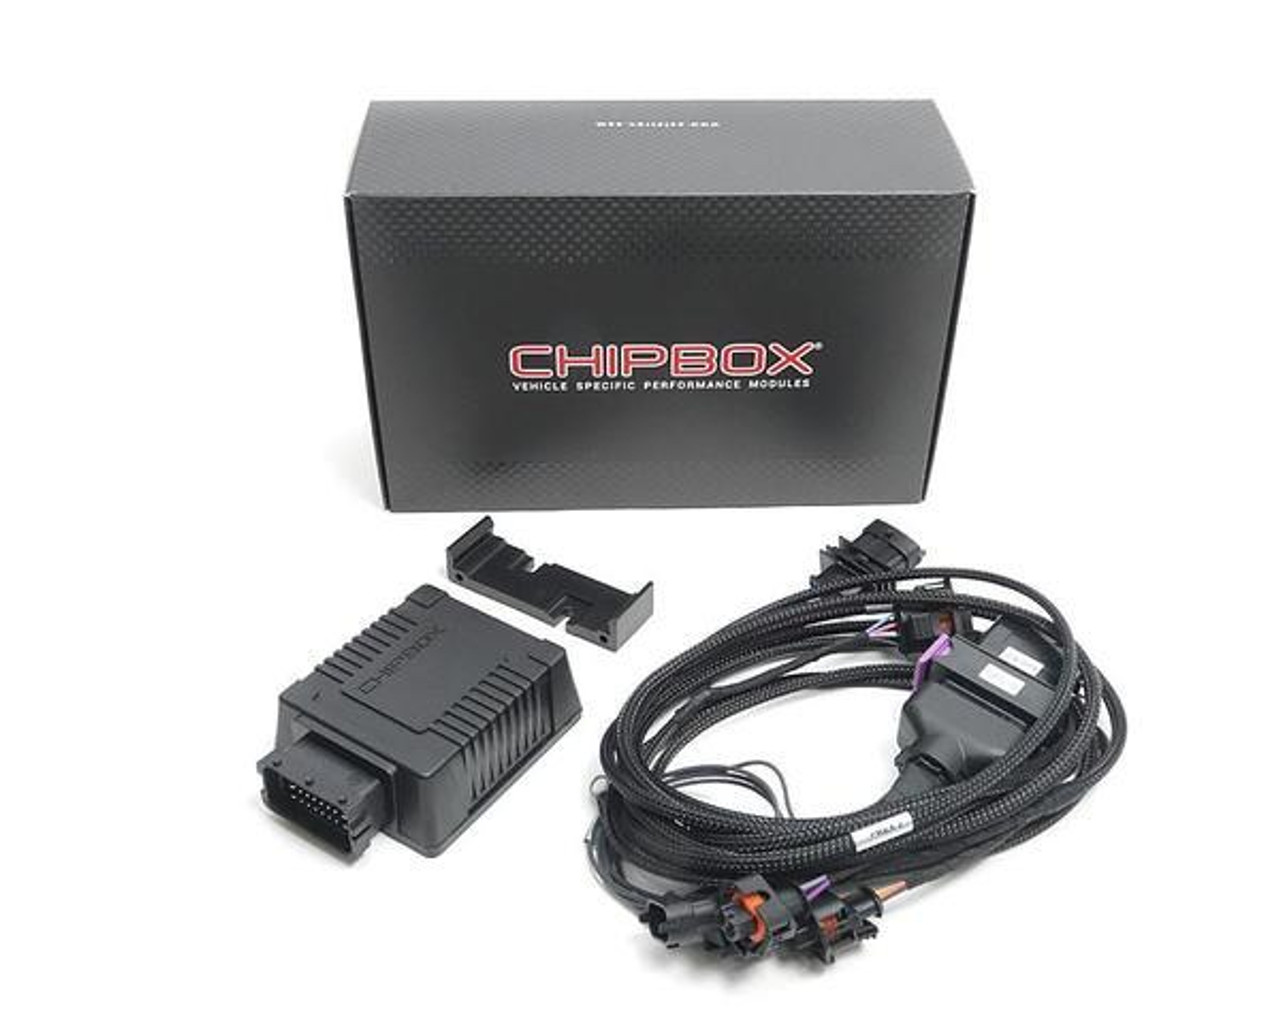 Chipbox Performance unit by Seletron Fits all 2012-on FIAT 500 1.4L Turbo Multiair Choose Bluetooth or non-Bluetooth options - Auto Ricambi